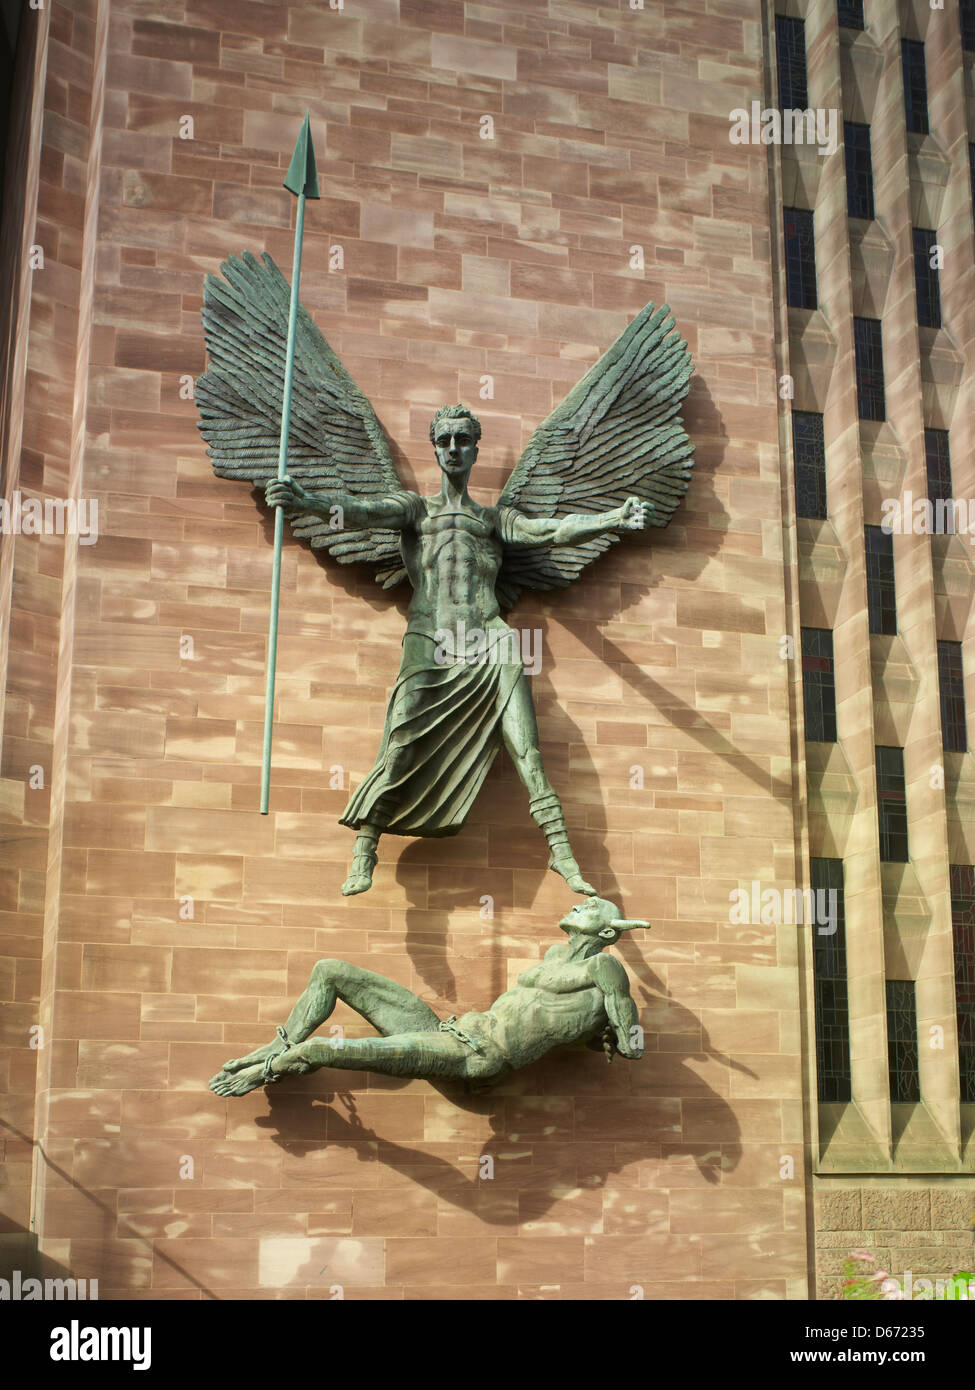 Coventry Cathedral of St Michael: giant bronze statue of St. Michael subduing the Devil by sculptor Jacob Epstein - Stock Image